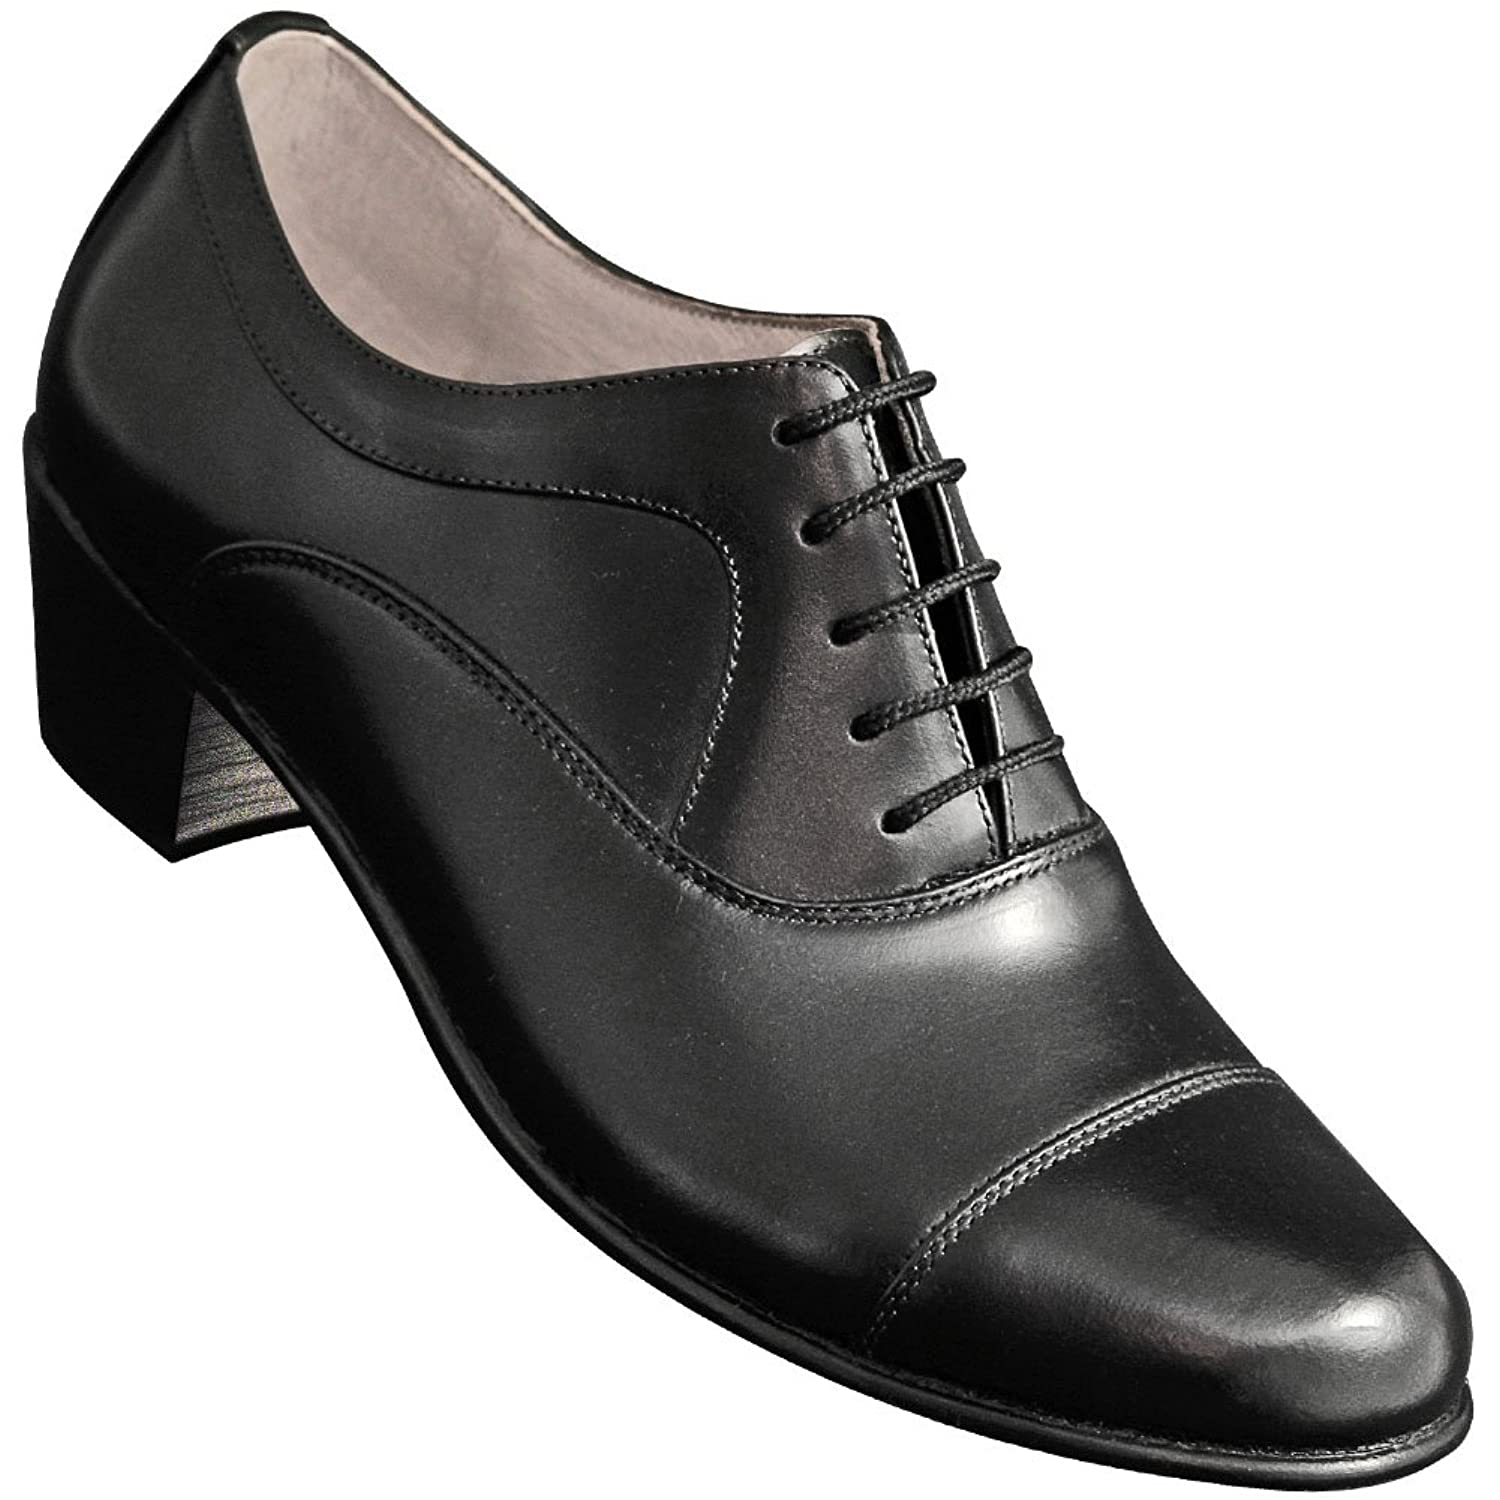 Retro Style Dance Shoes Aris Allen Mens Captoe Tango Dance Shoe $74.95 AT vintagedancer.com